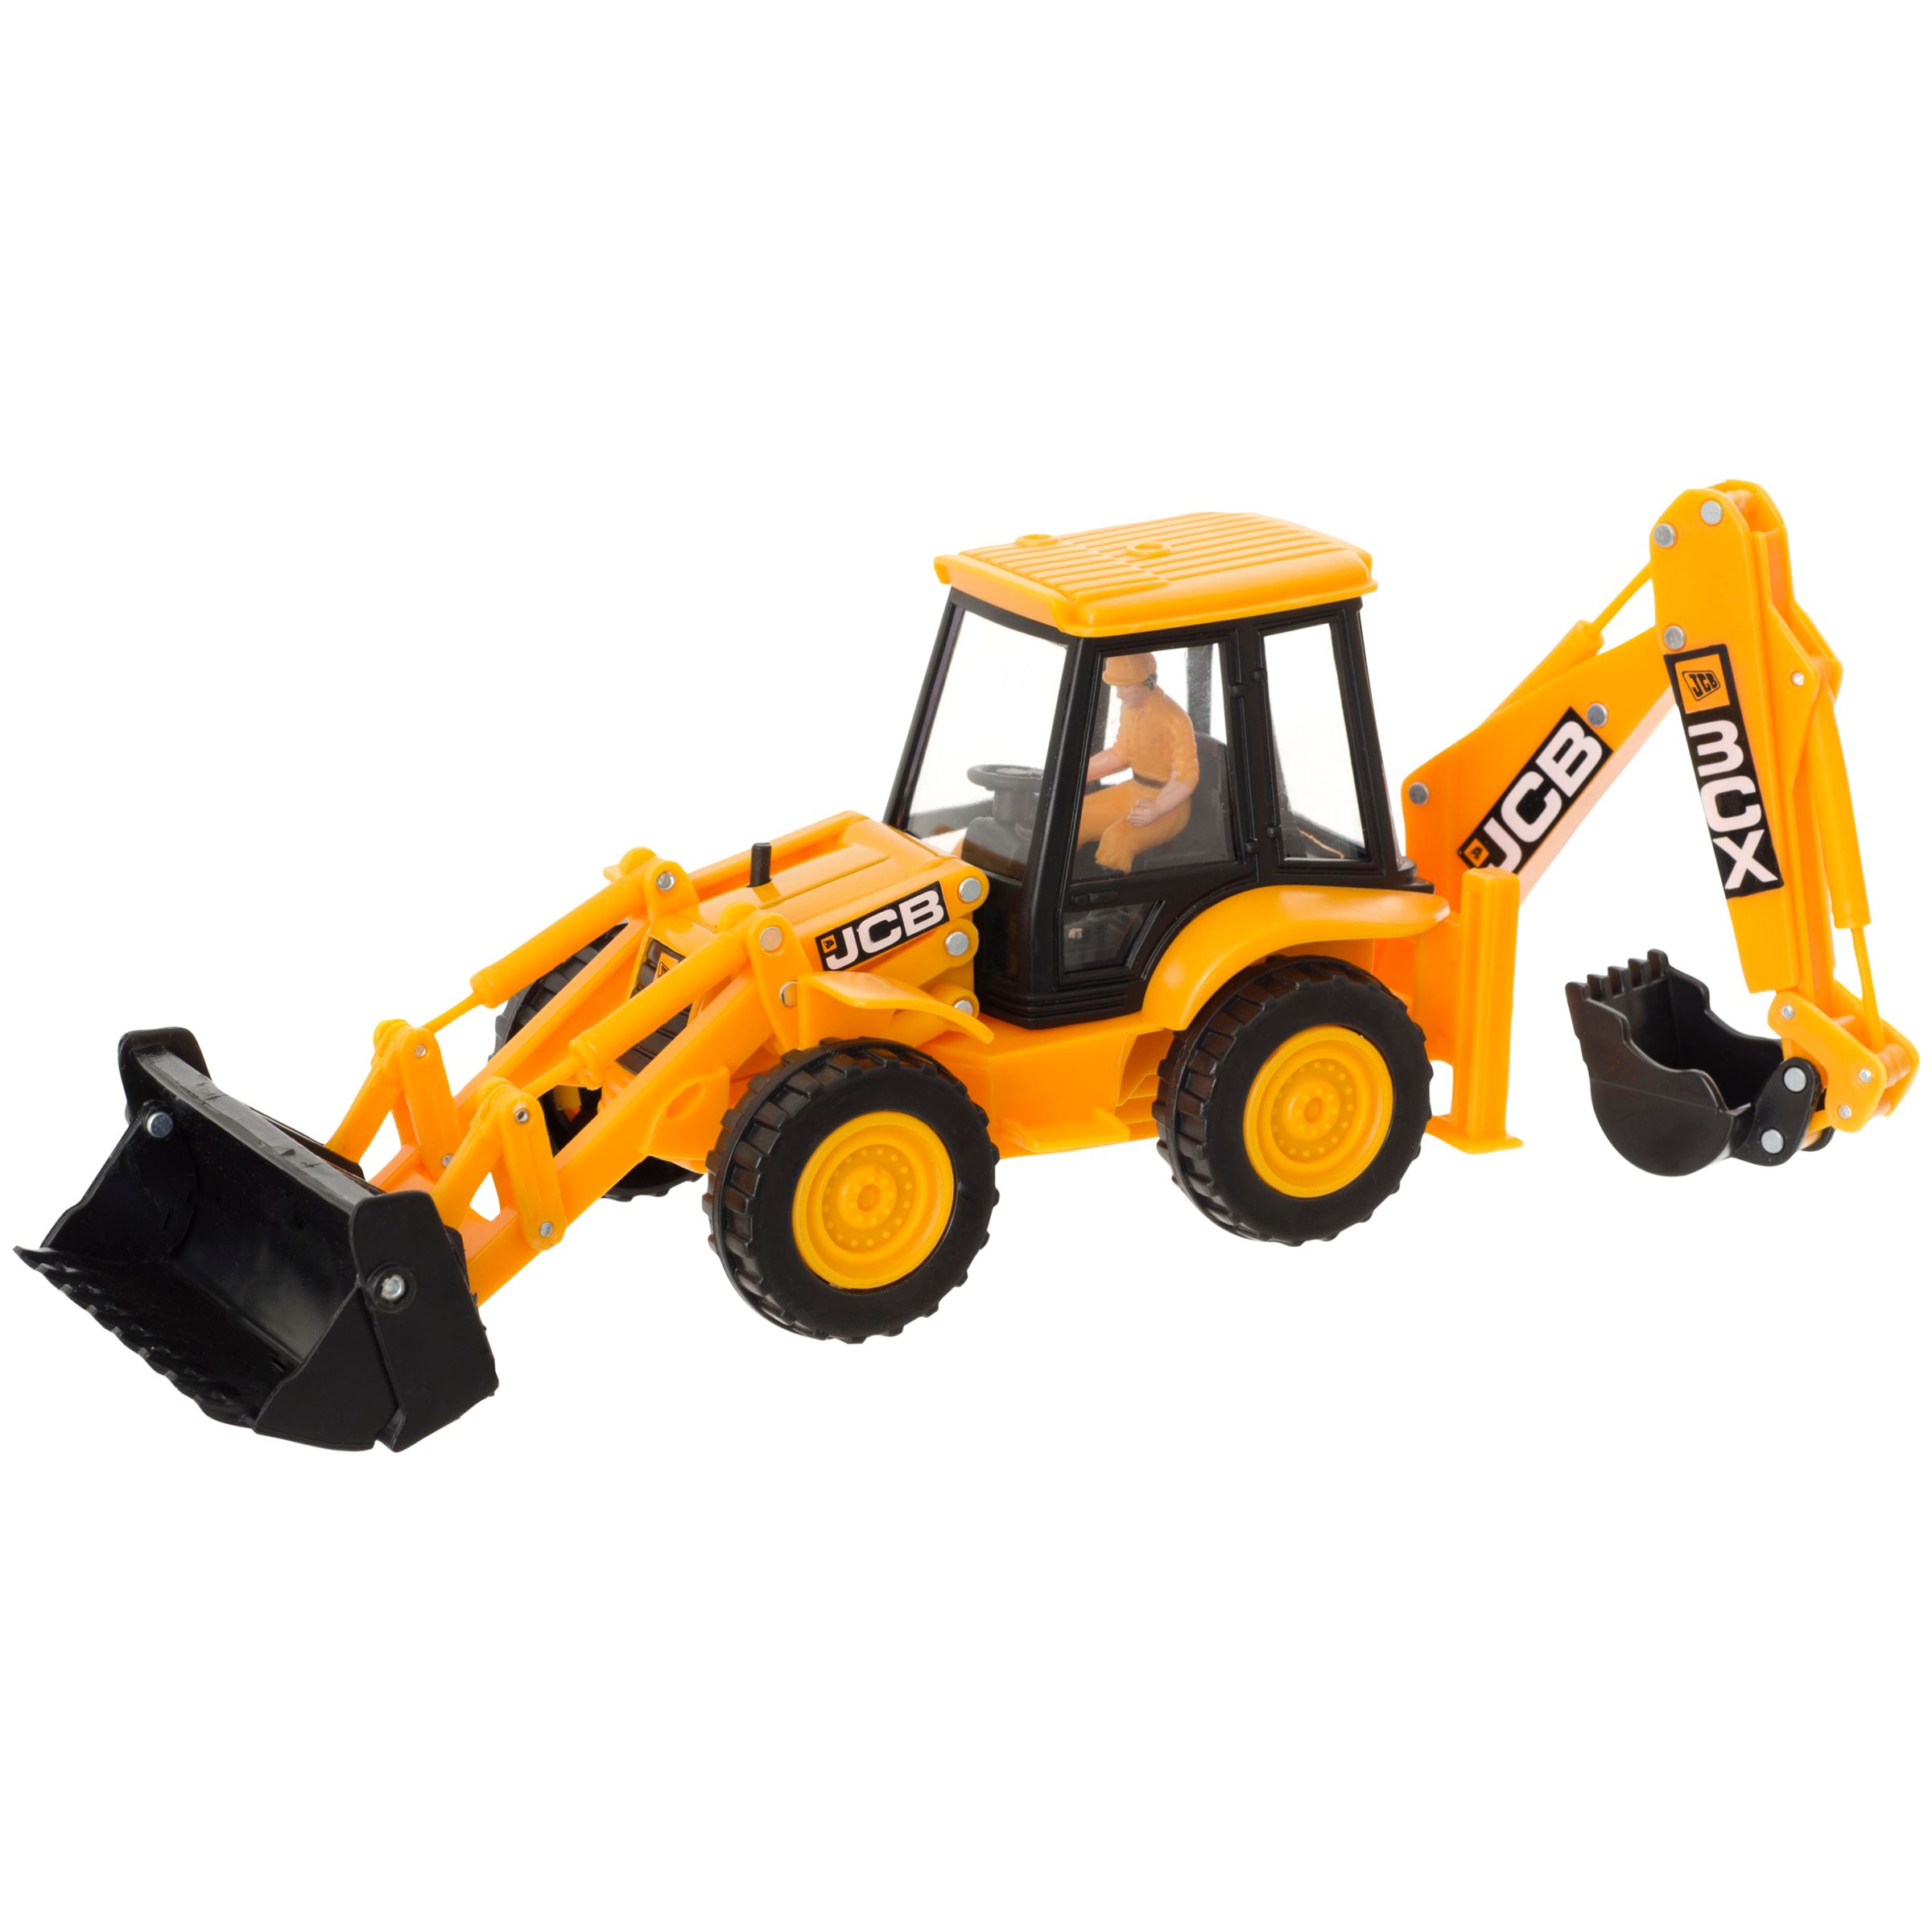 JCB 1:32 Scale Vehicles, Assorted